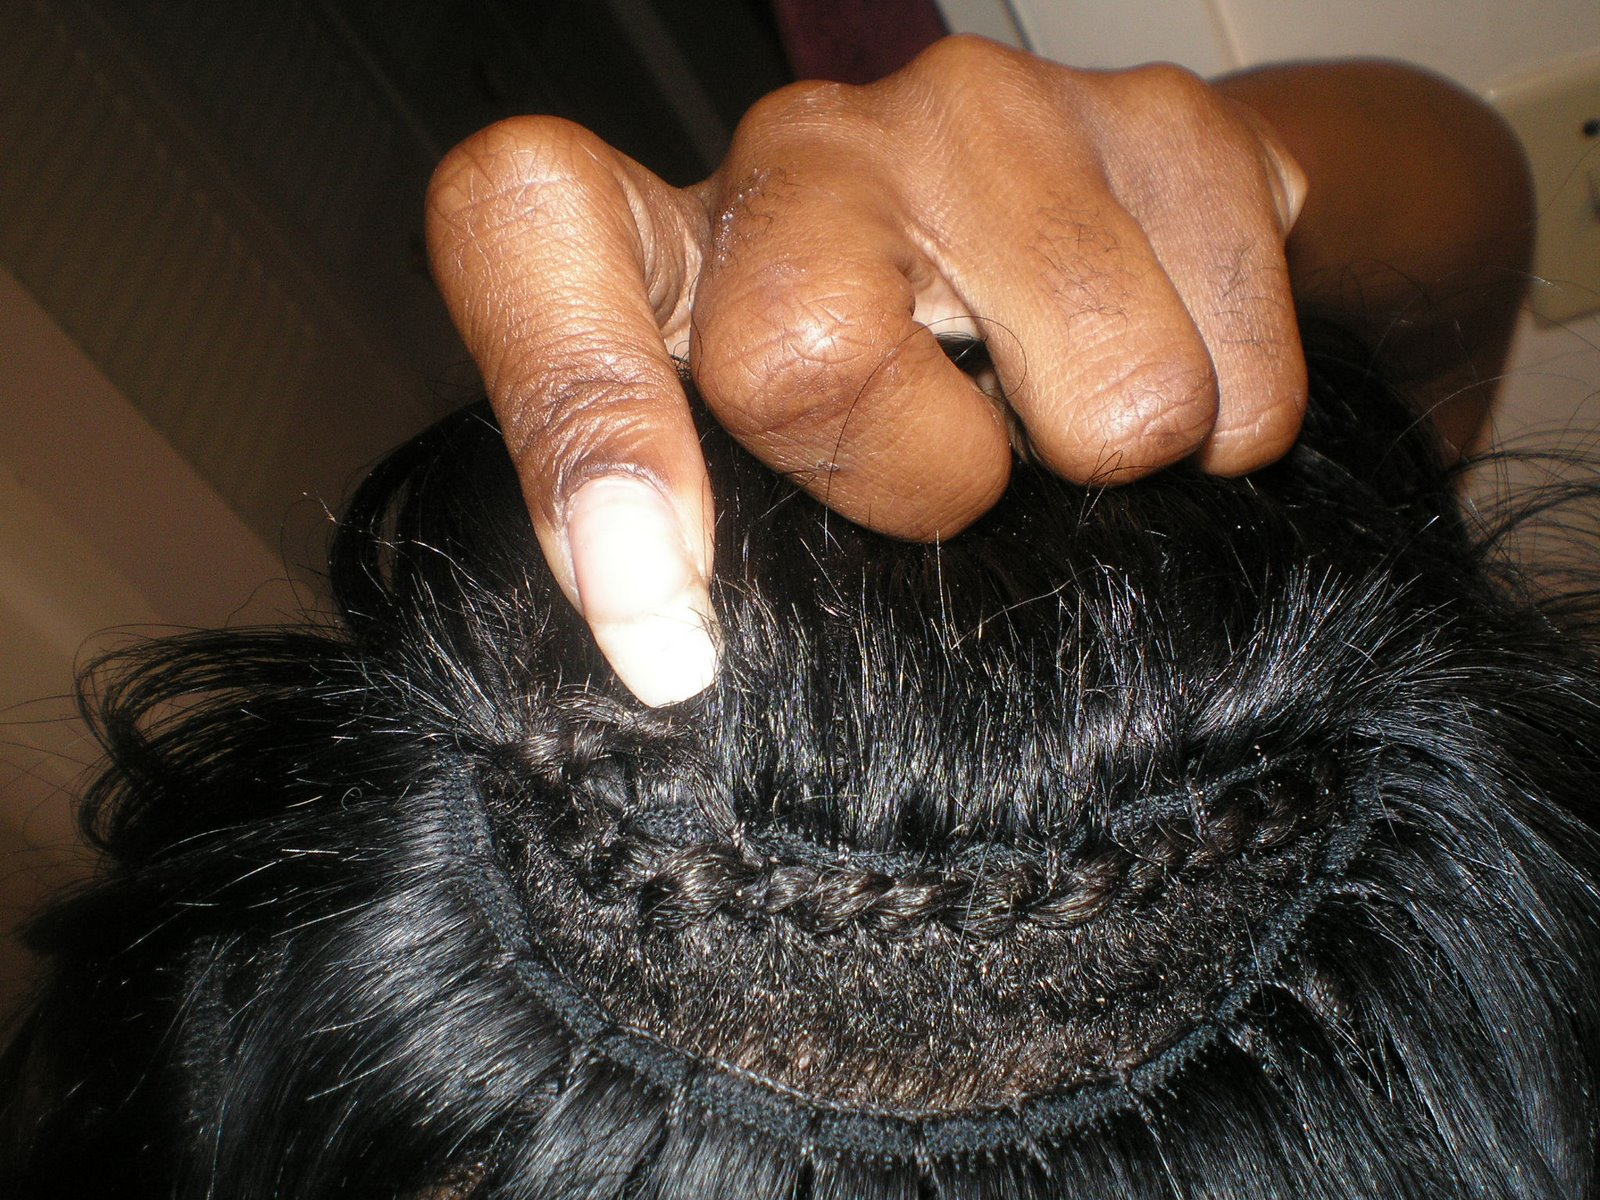 When My Scalp Itches, Is My Hair Growing?